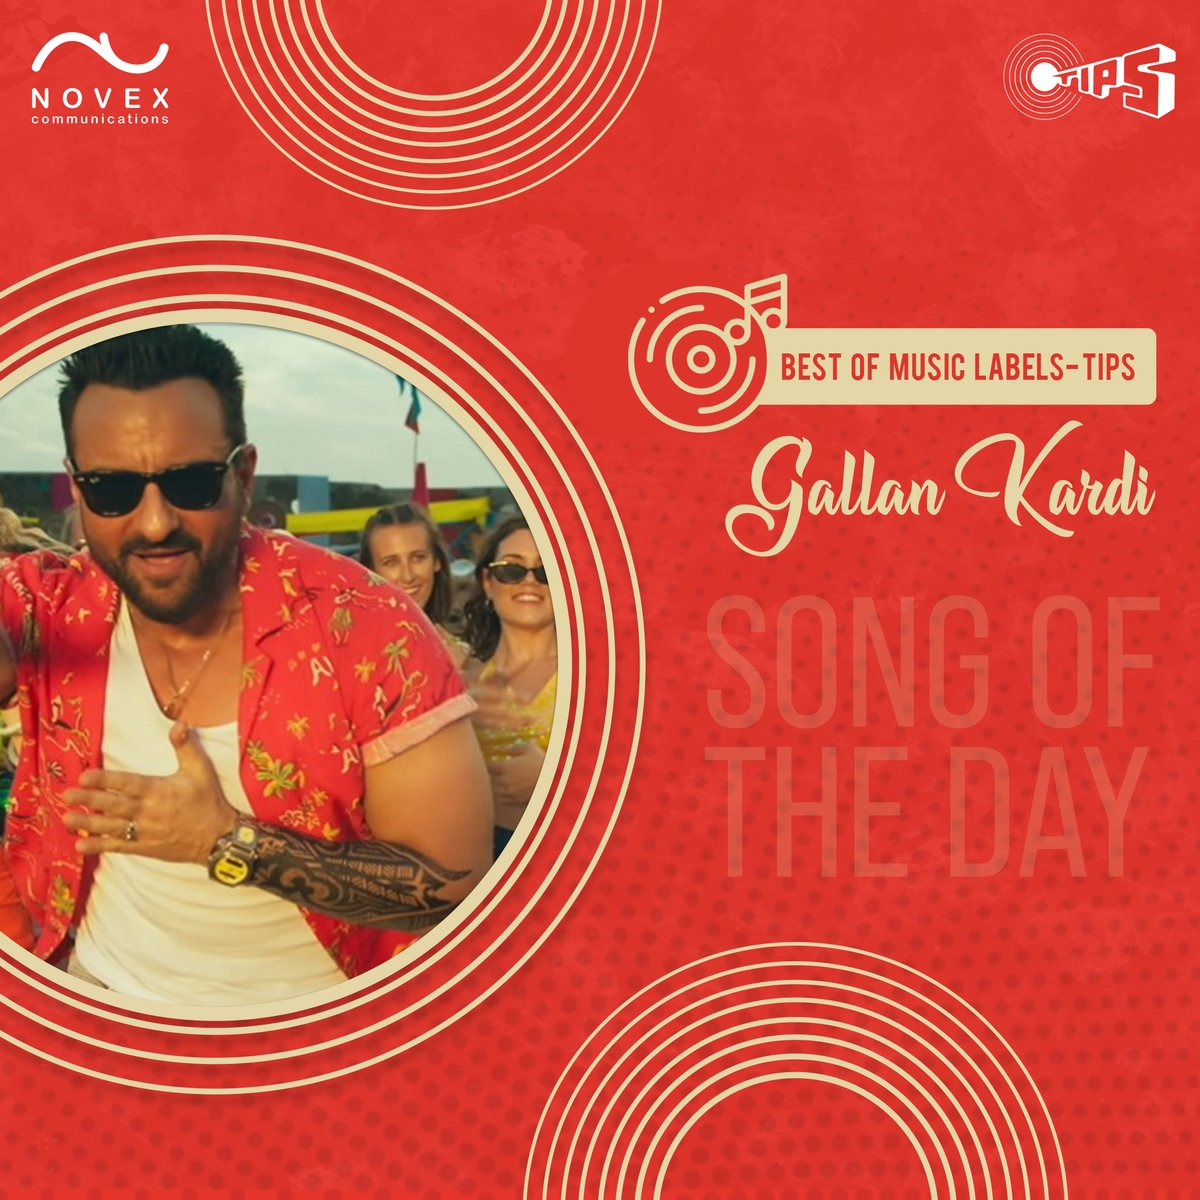 Put your hands in the air and groove to Gallan kardi! To buy, Public Performance Rights of @tipsofficial, call us at +9199201 99977 or visit   #Novex  #novexcommunications #bestofmusiclabels #TipsMusic #musiclicensing #gallakardi #SaifAliKhan #ApplyNow